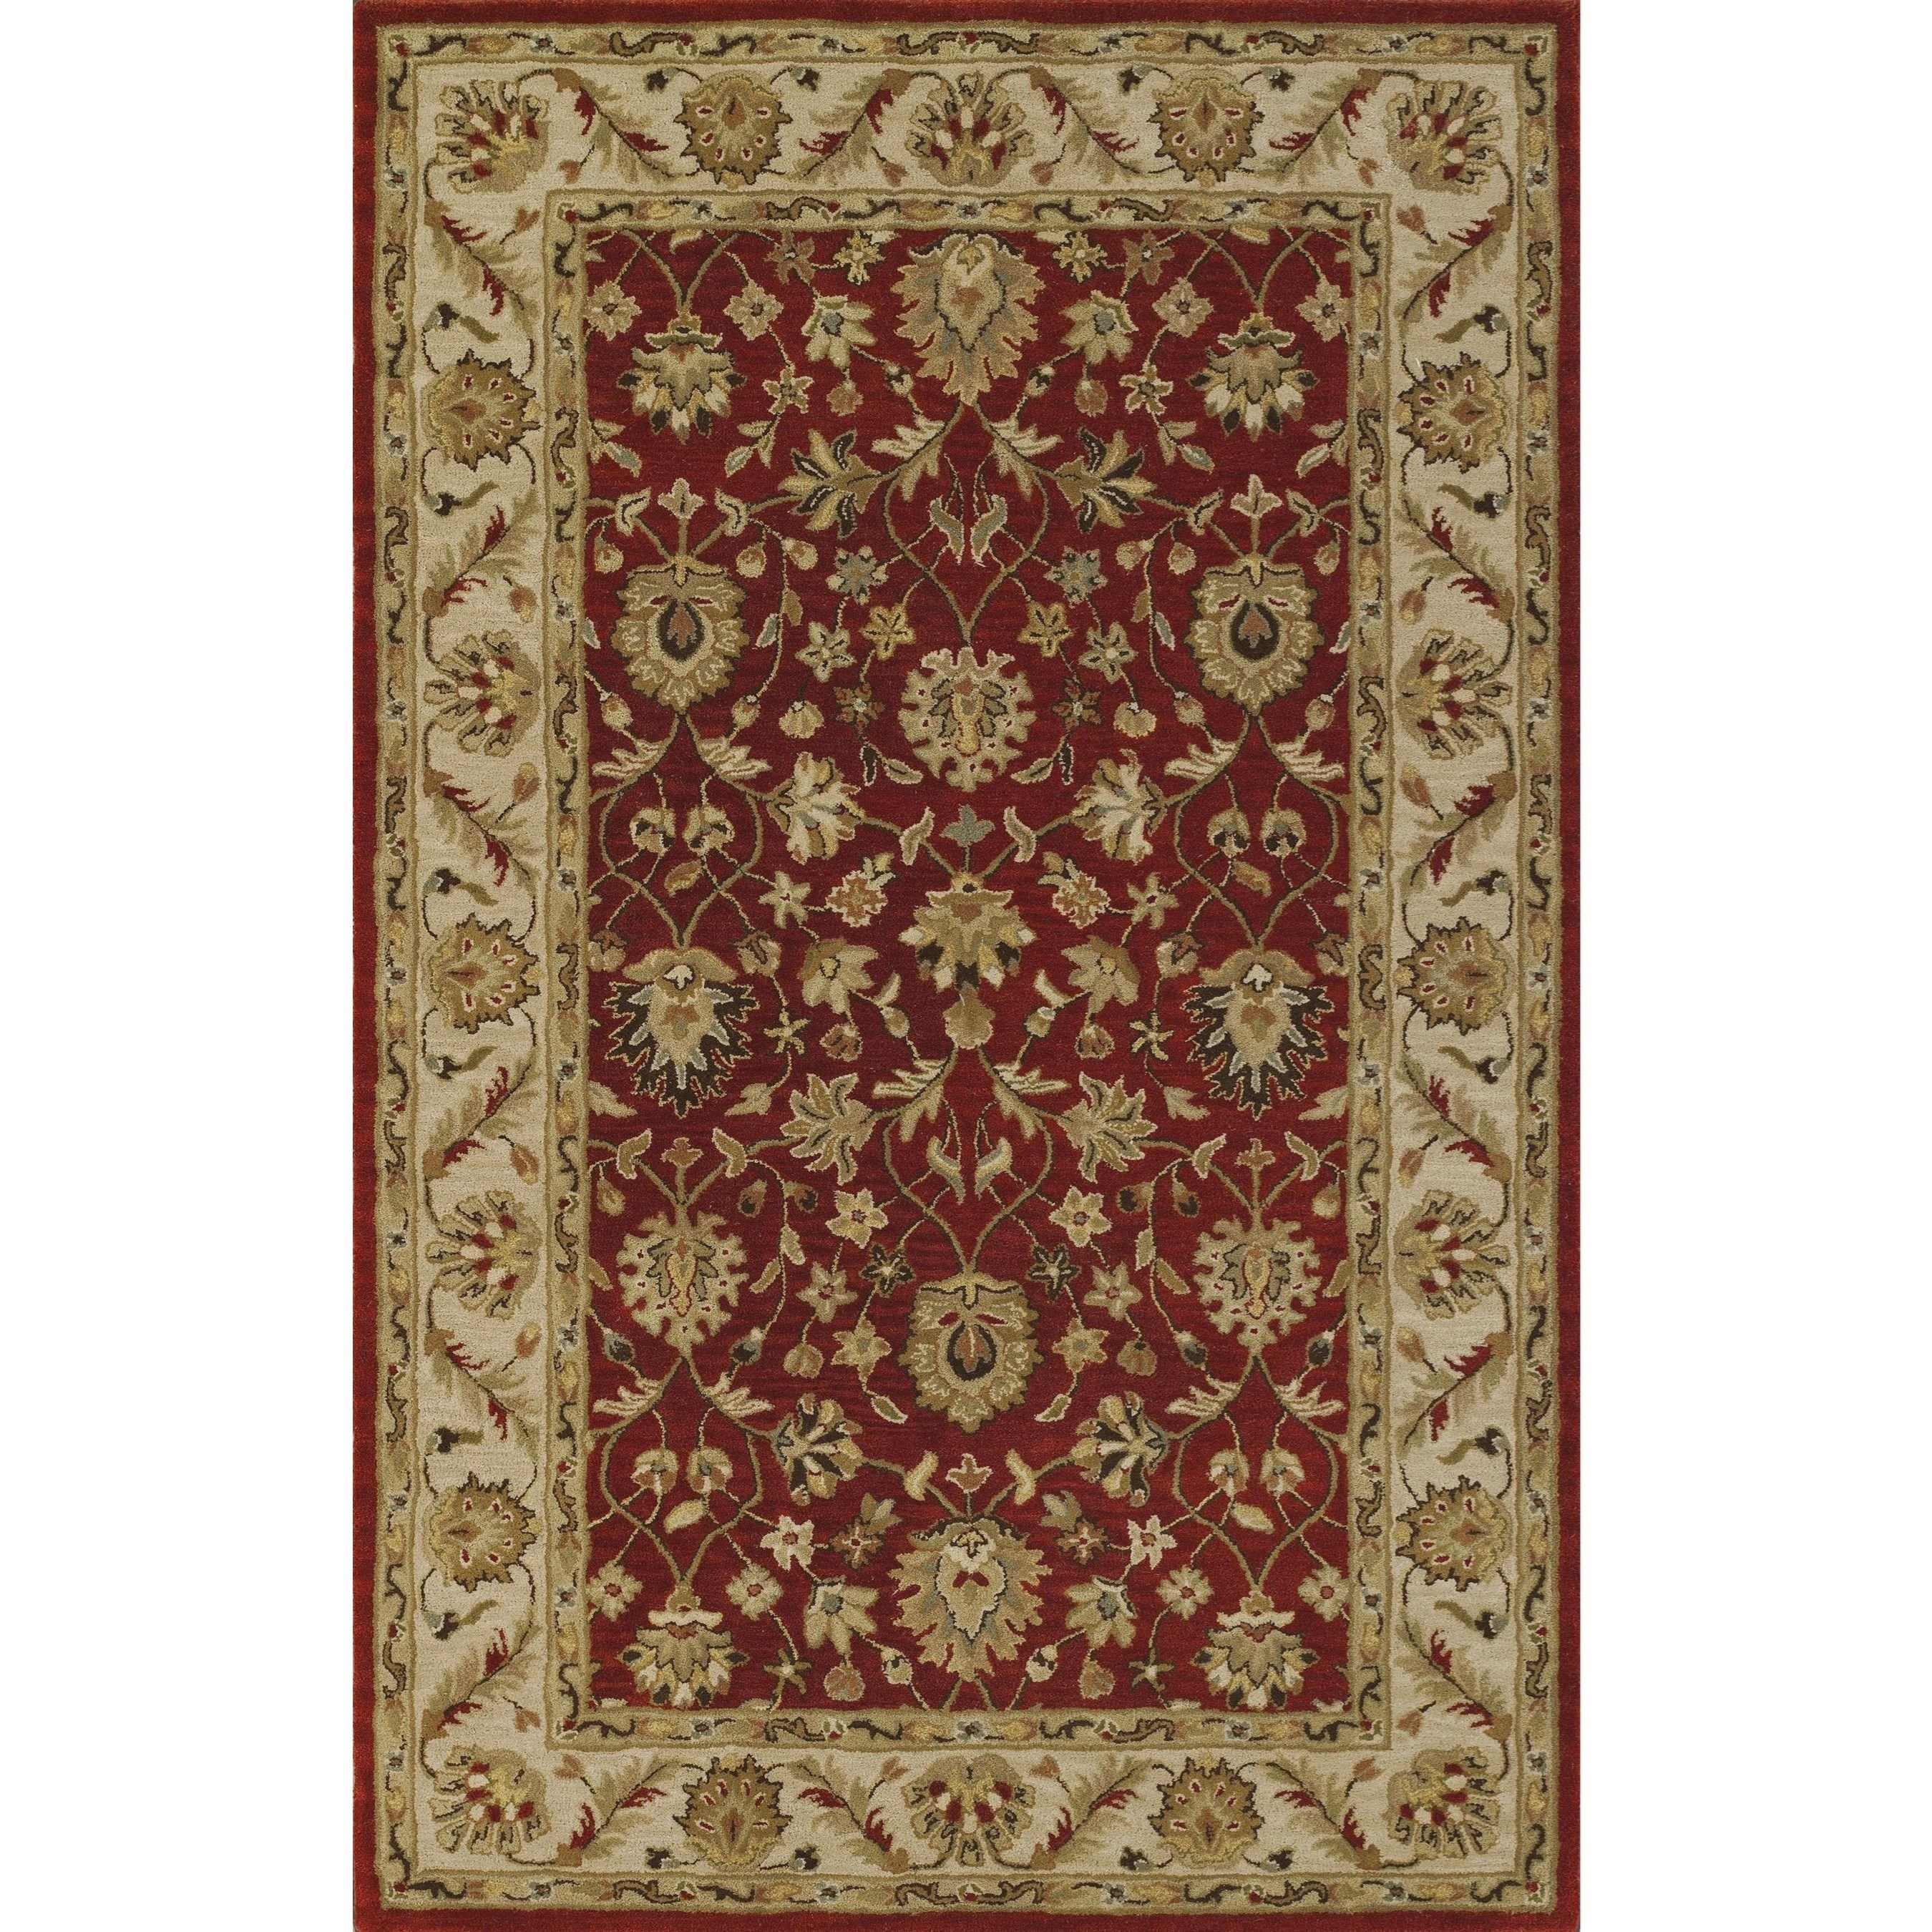 Dalyn Jewel Salsa/Ivory 5'X8' Rug - Item Number: JW33SA-IV5X8